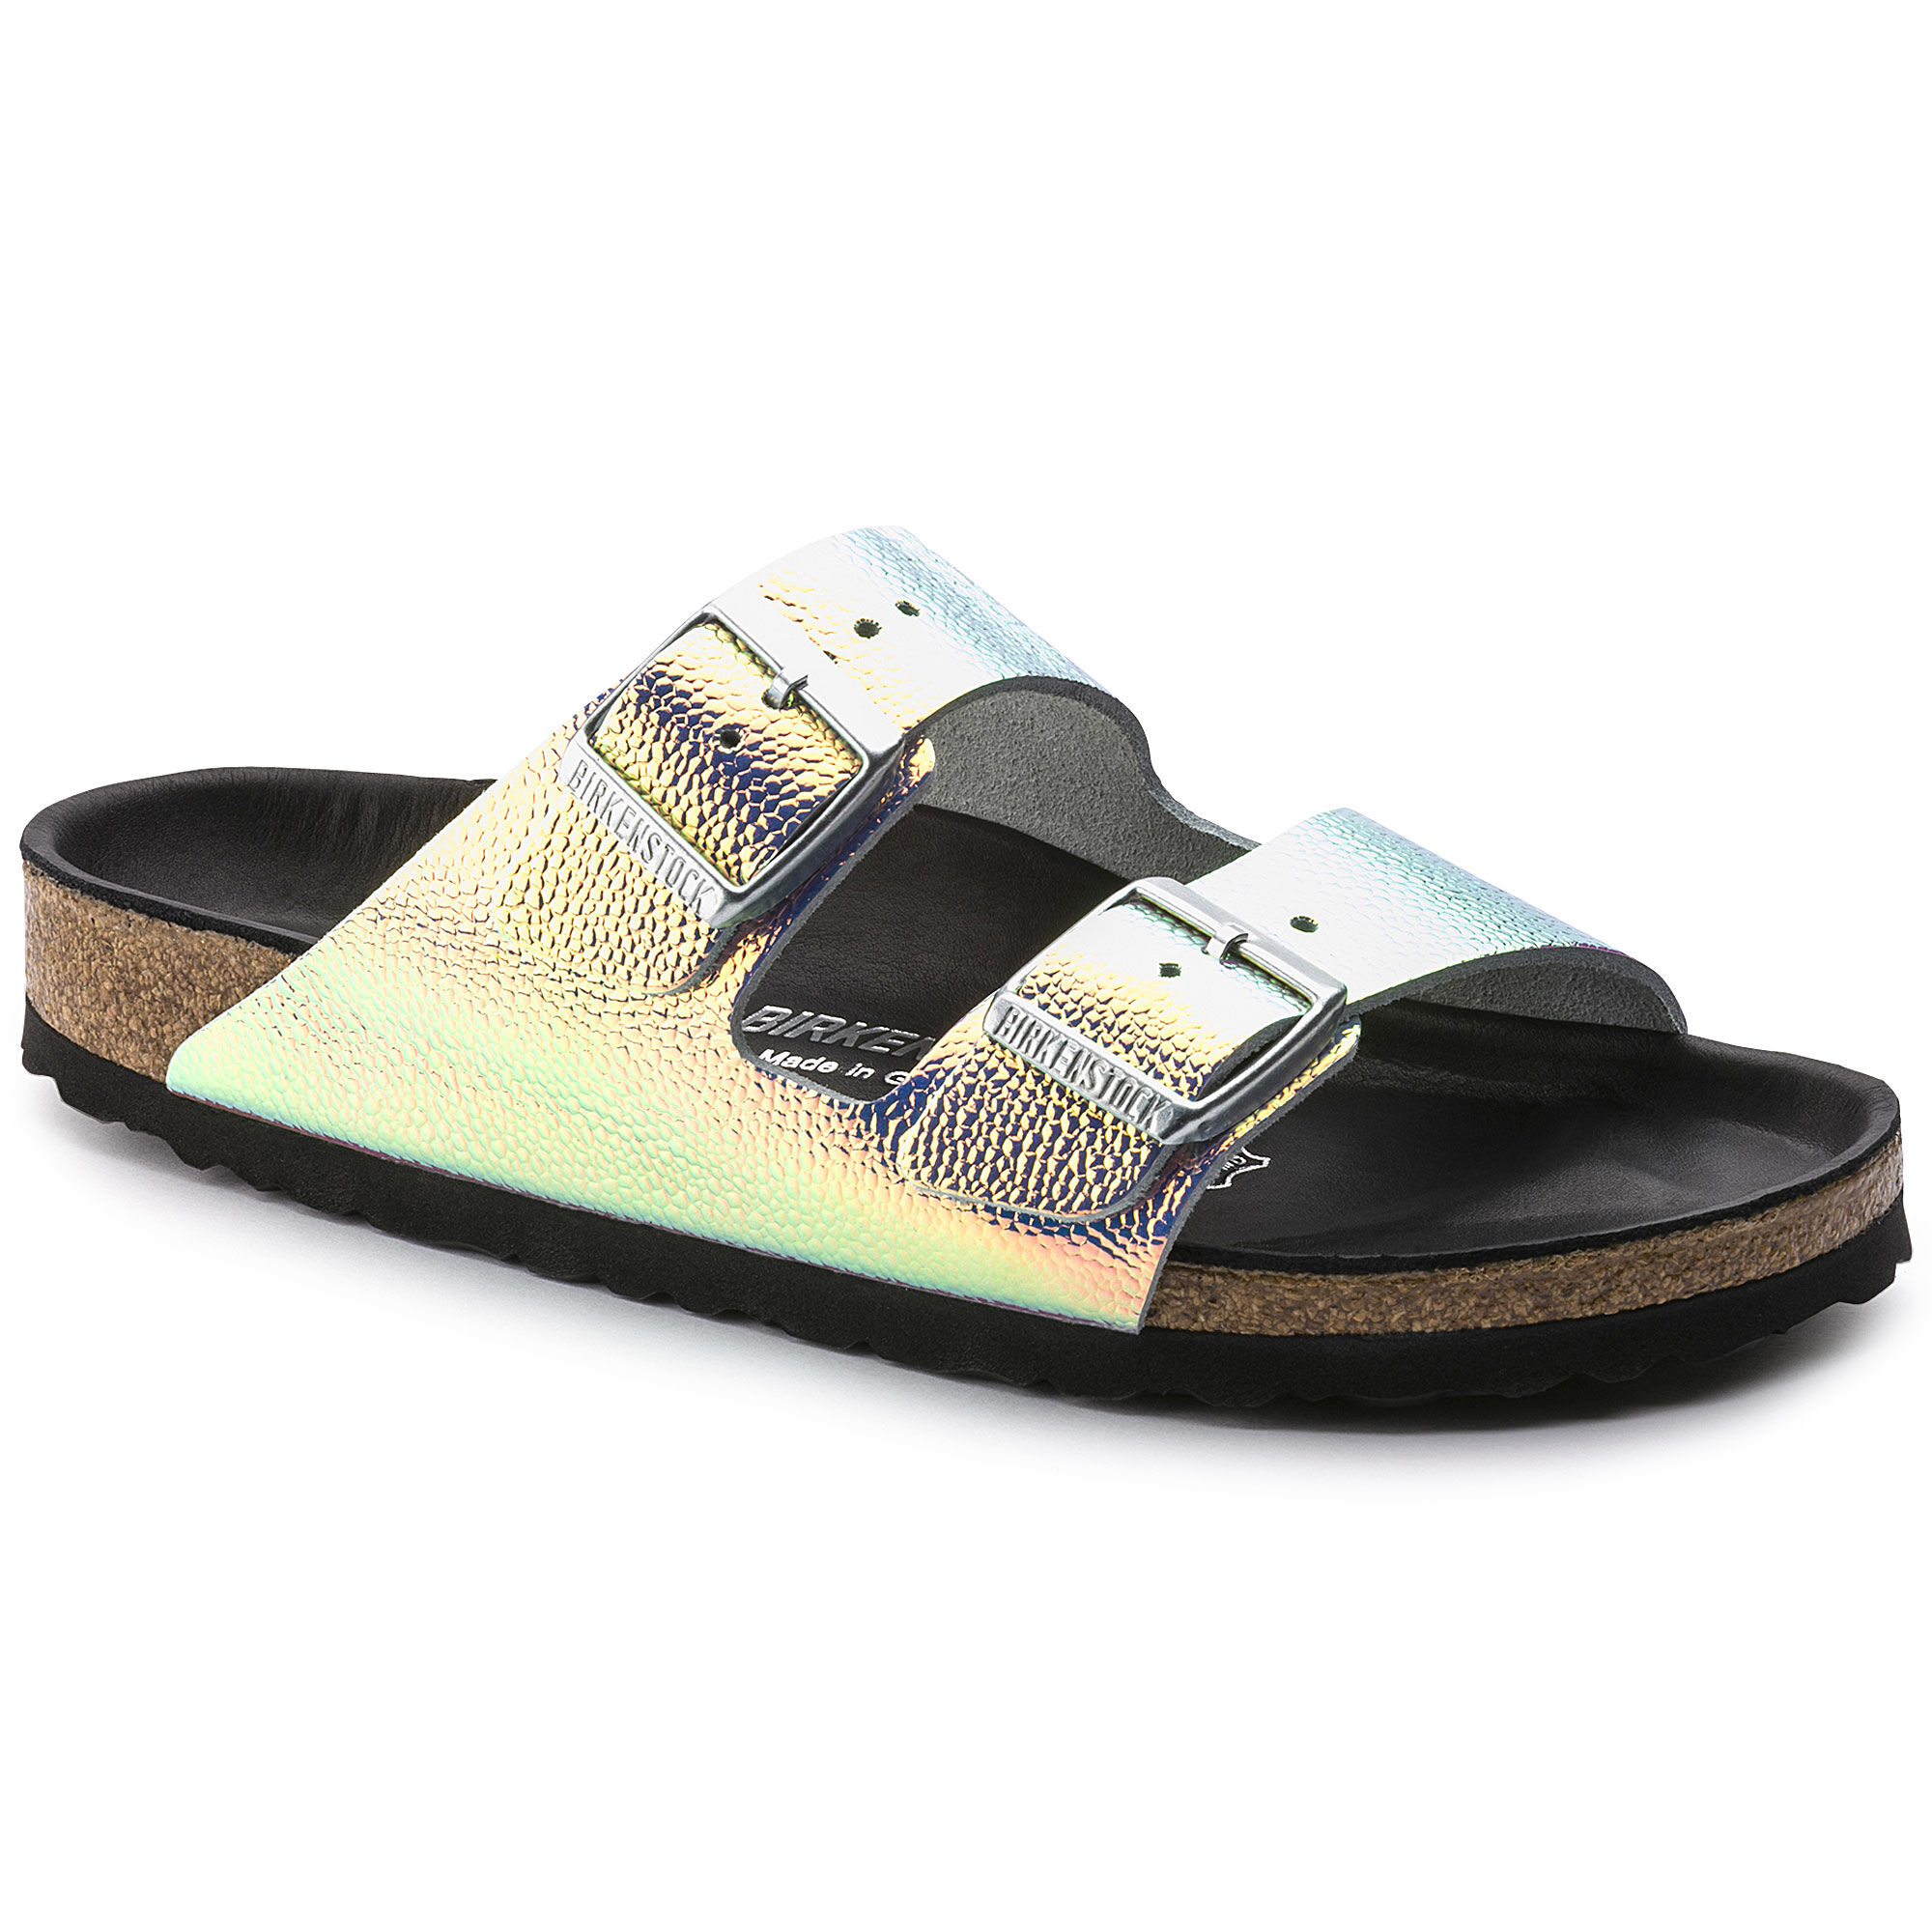 41b8d1bb4864 Birkenstock Arizona at £115